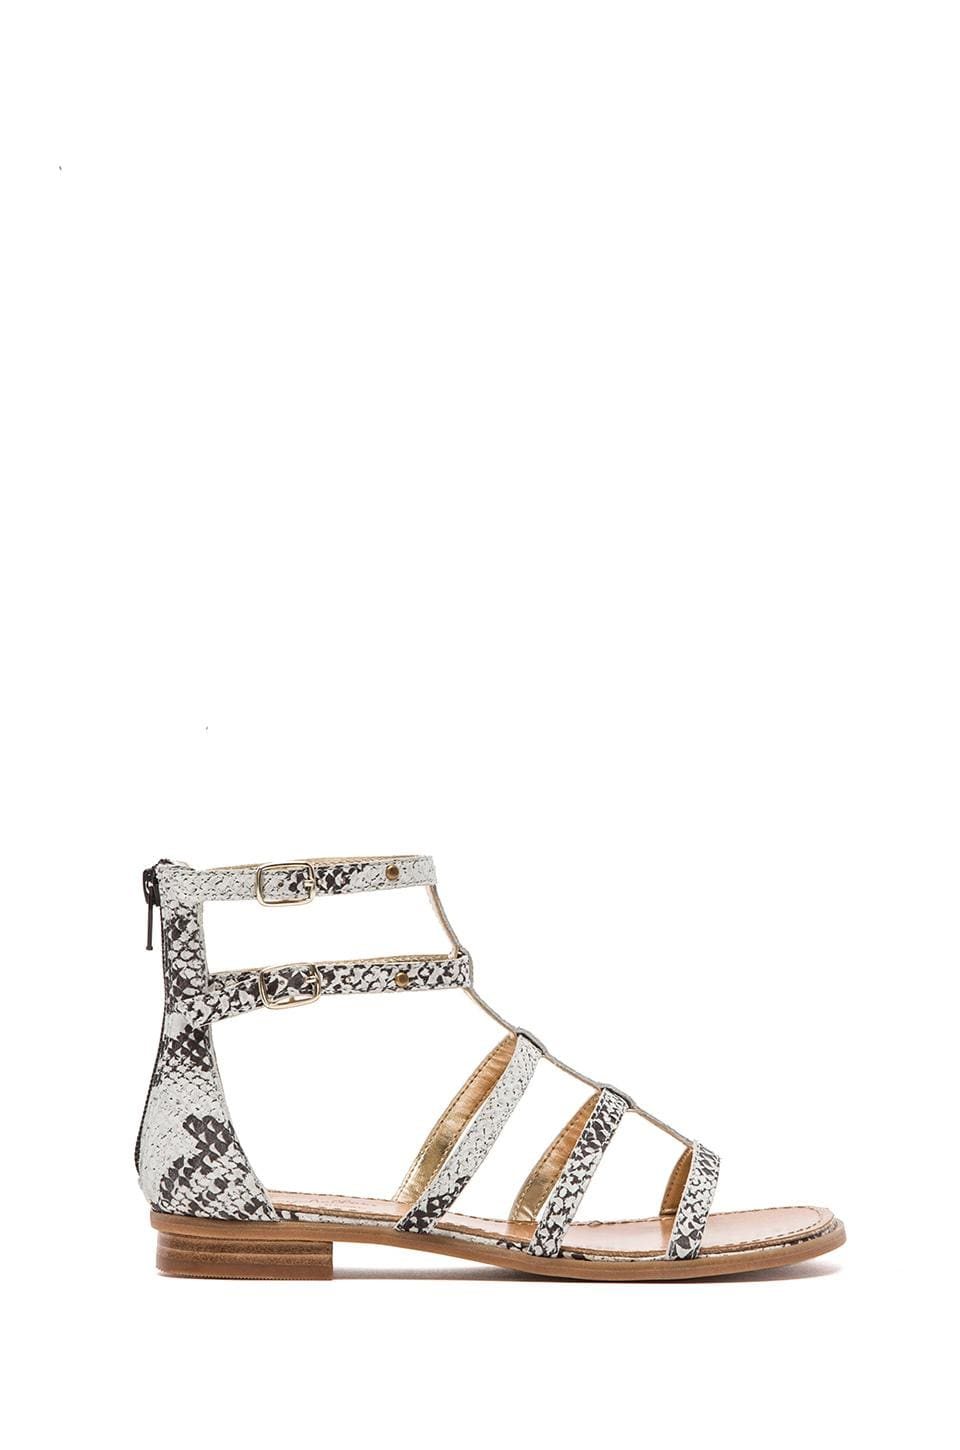 Seychelles Aim High Sandal in Black & White Python